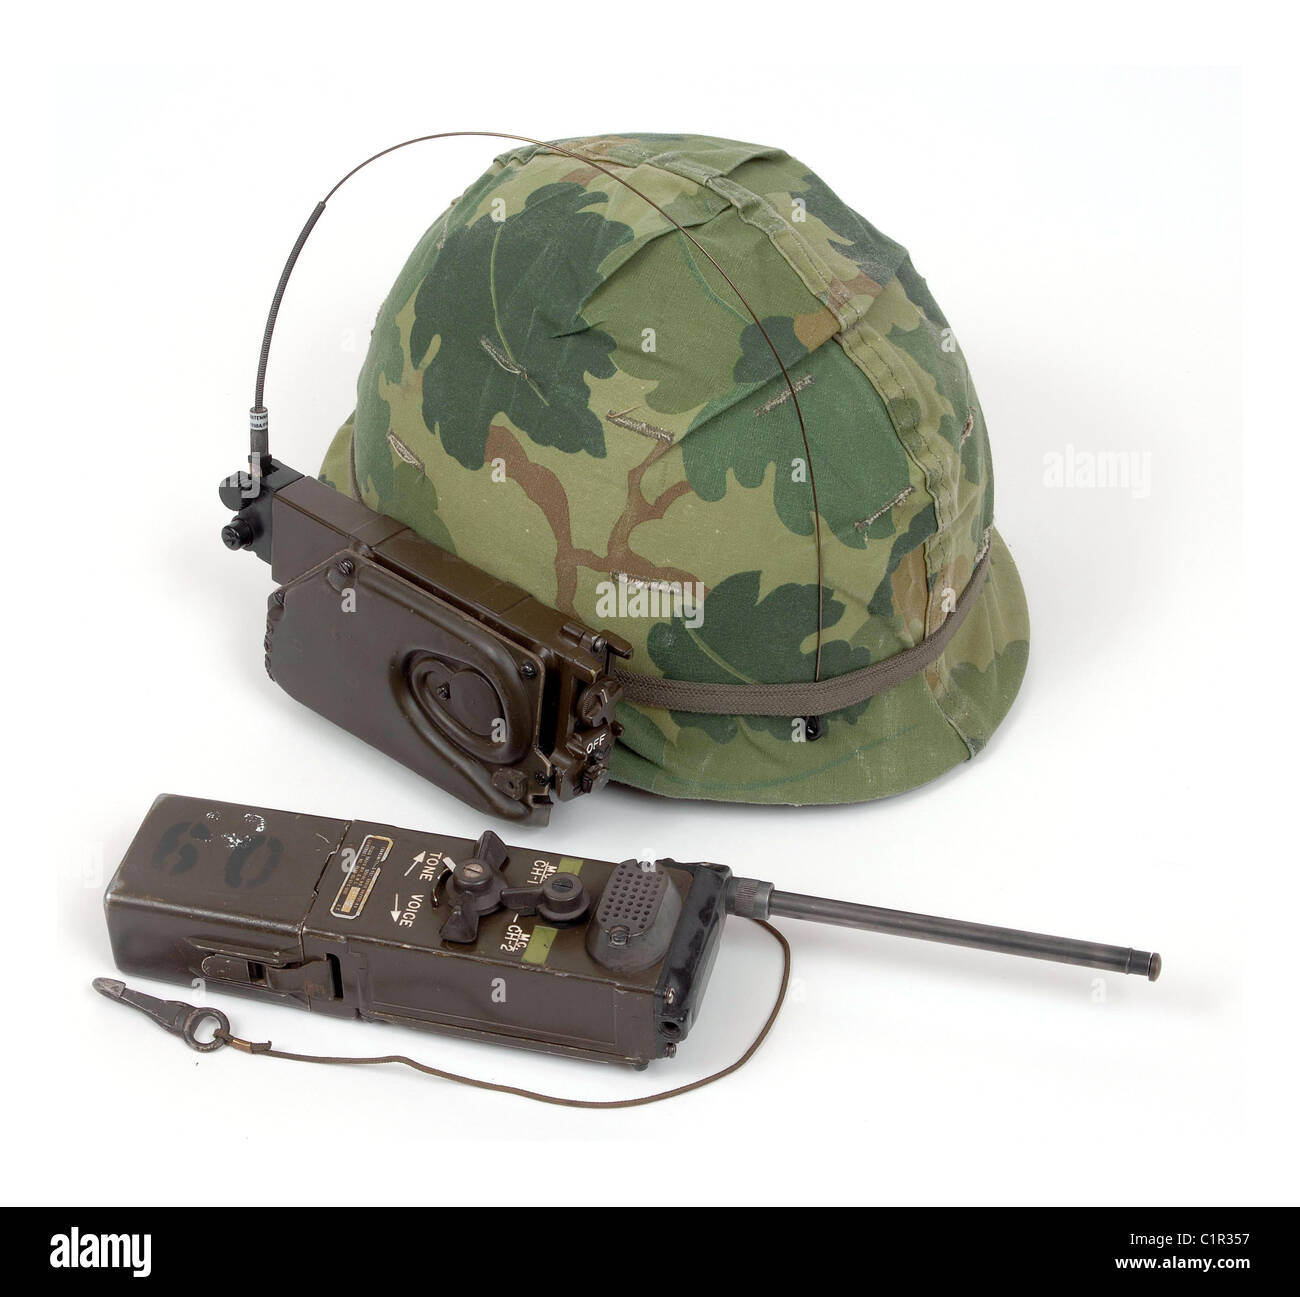 American Vietnam period M1 pattern GI helmet with squad level radio receiver AN/PRR-9 and transmitter AN/PRT-4A. Stock Photo